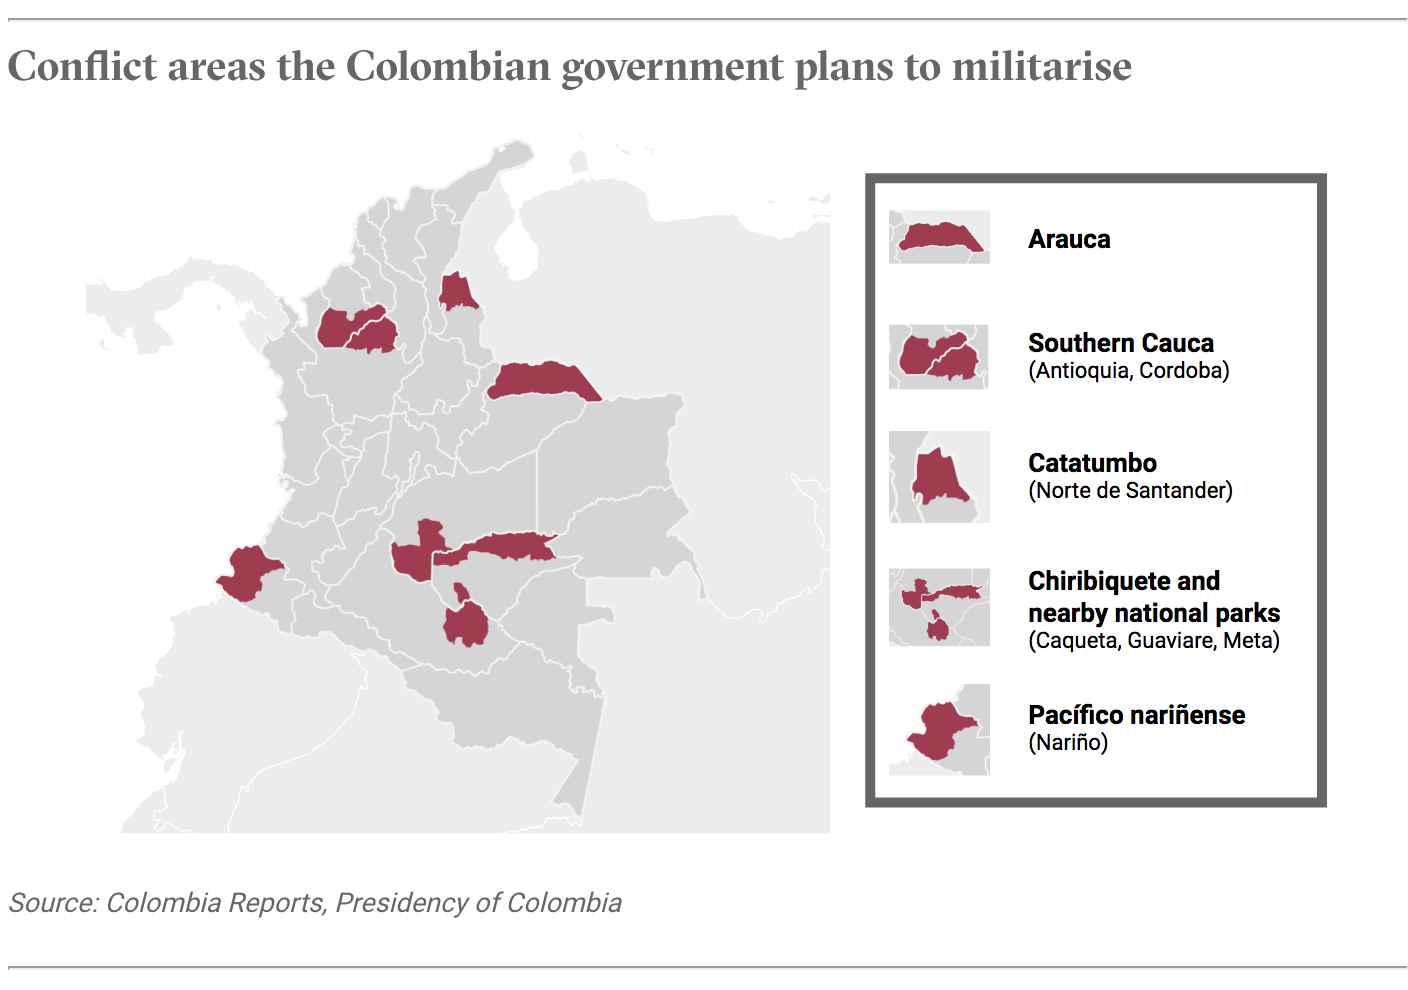 Conflict areas the Colombian government plans to militarise